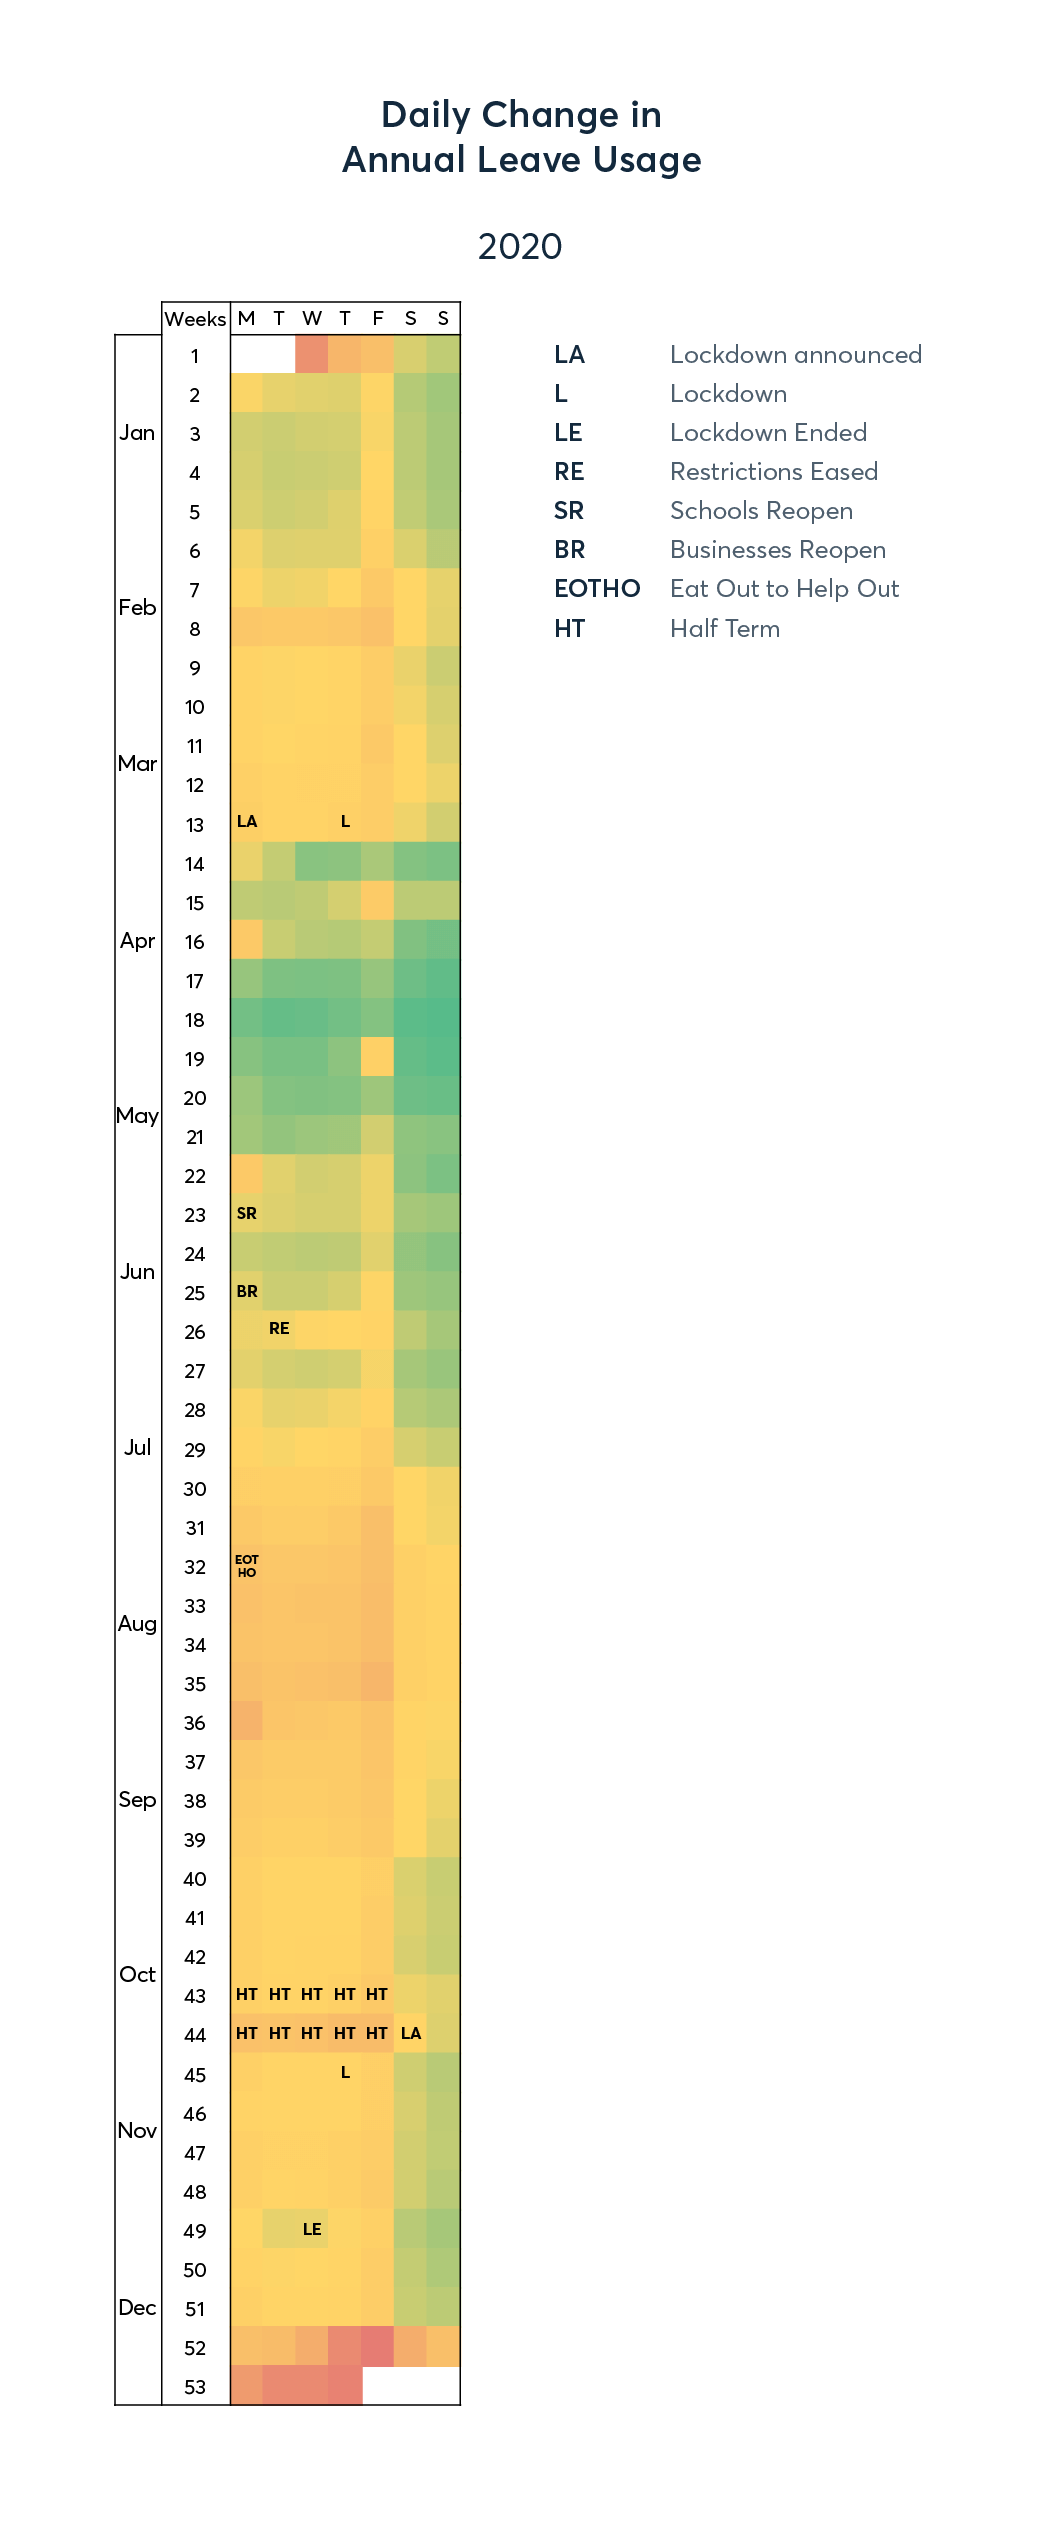 Heatmap showing daily changes in annual leave usage for 2020